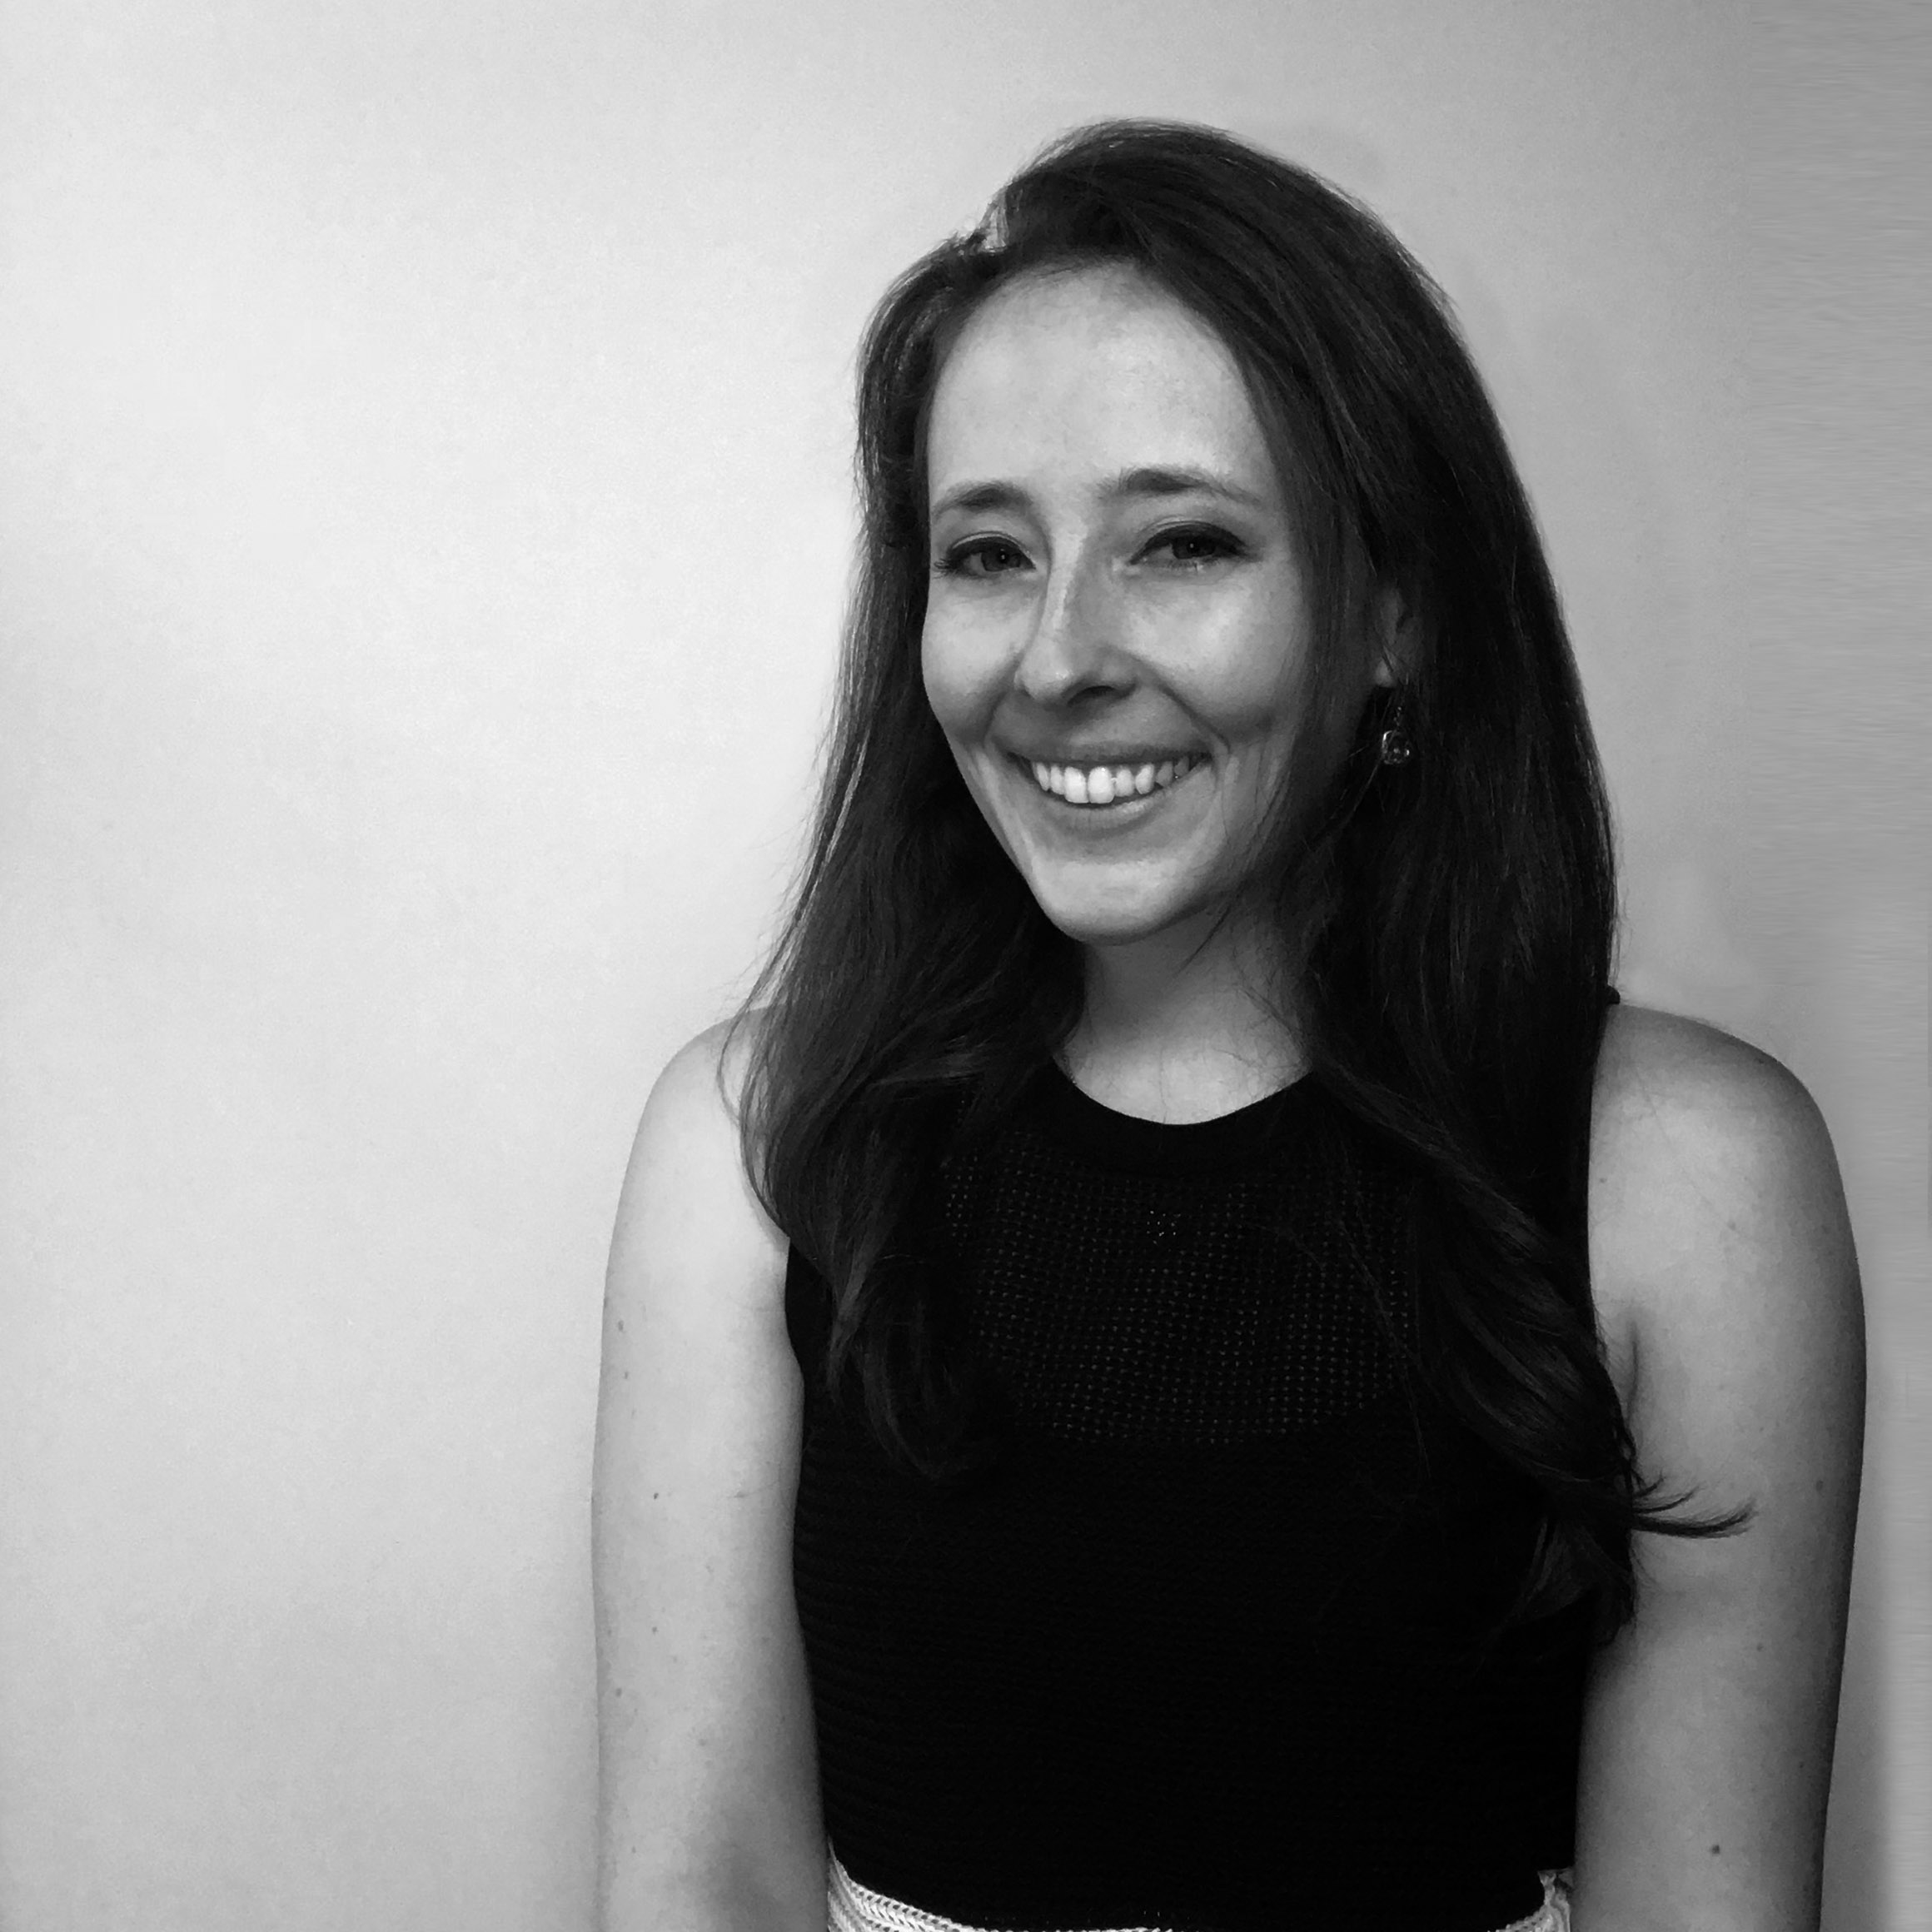 """Erin evon 